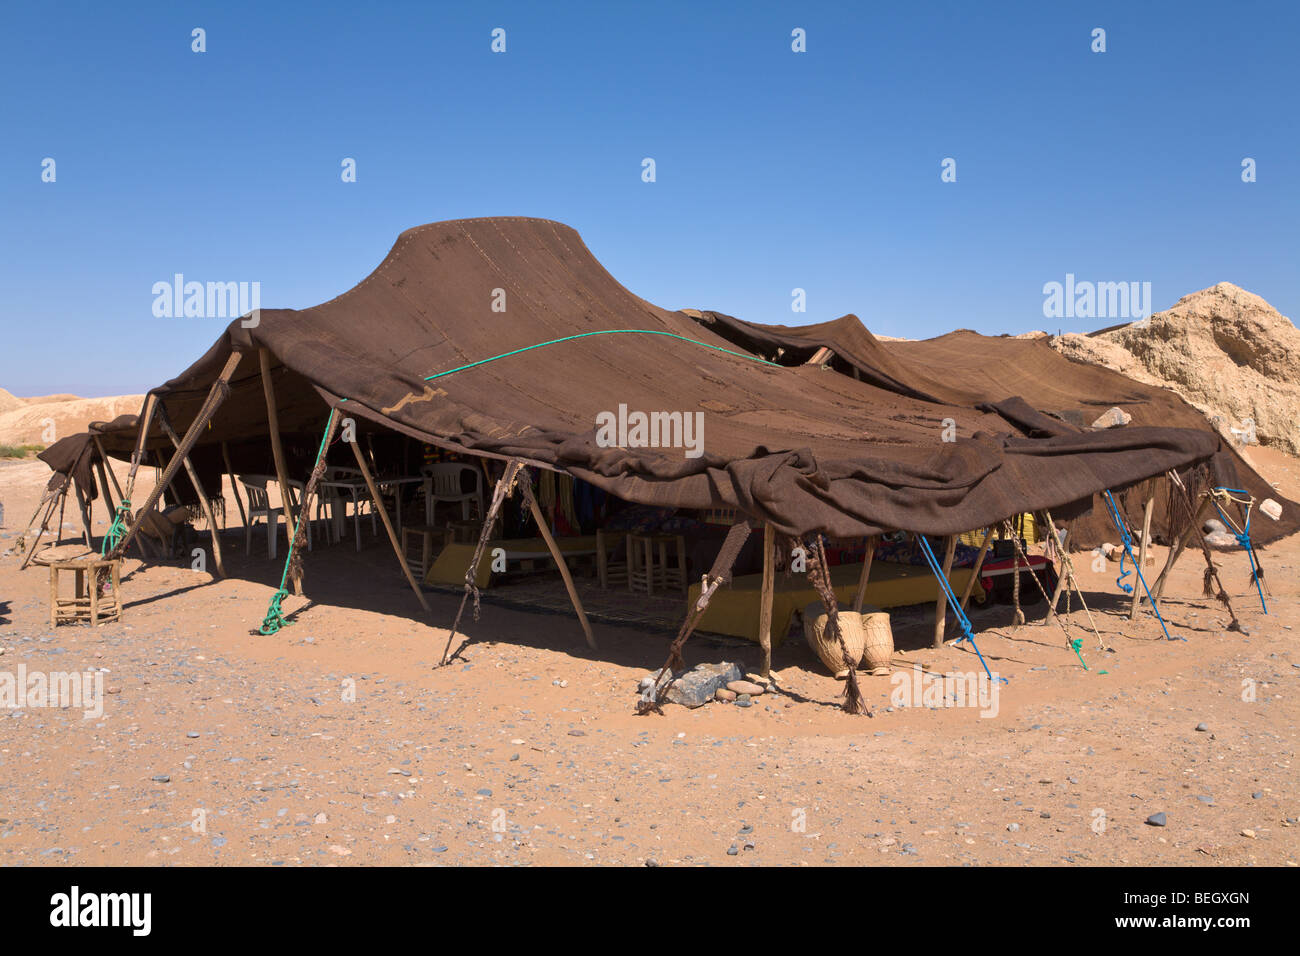 Tent of nomadic people Morocco - Stock Image